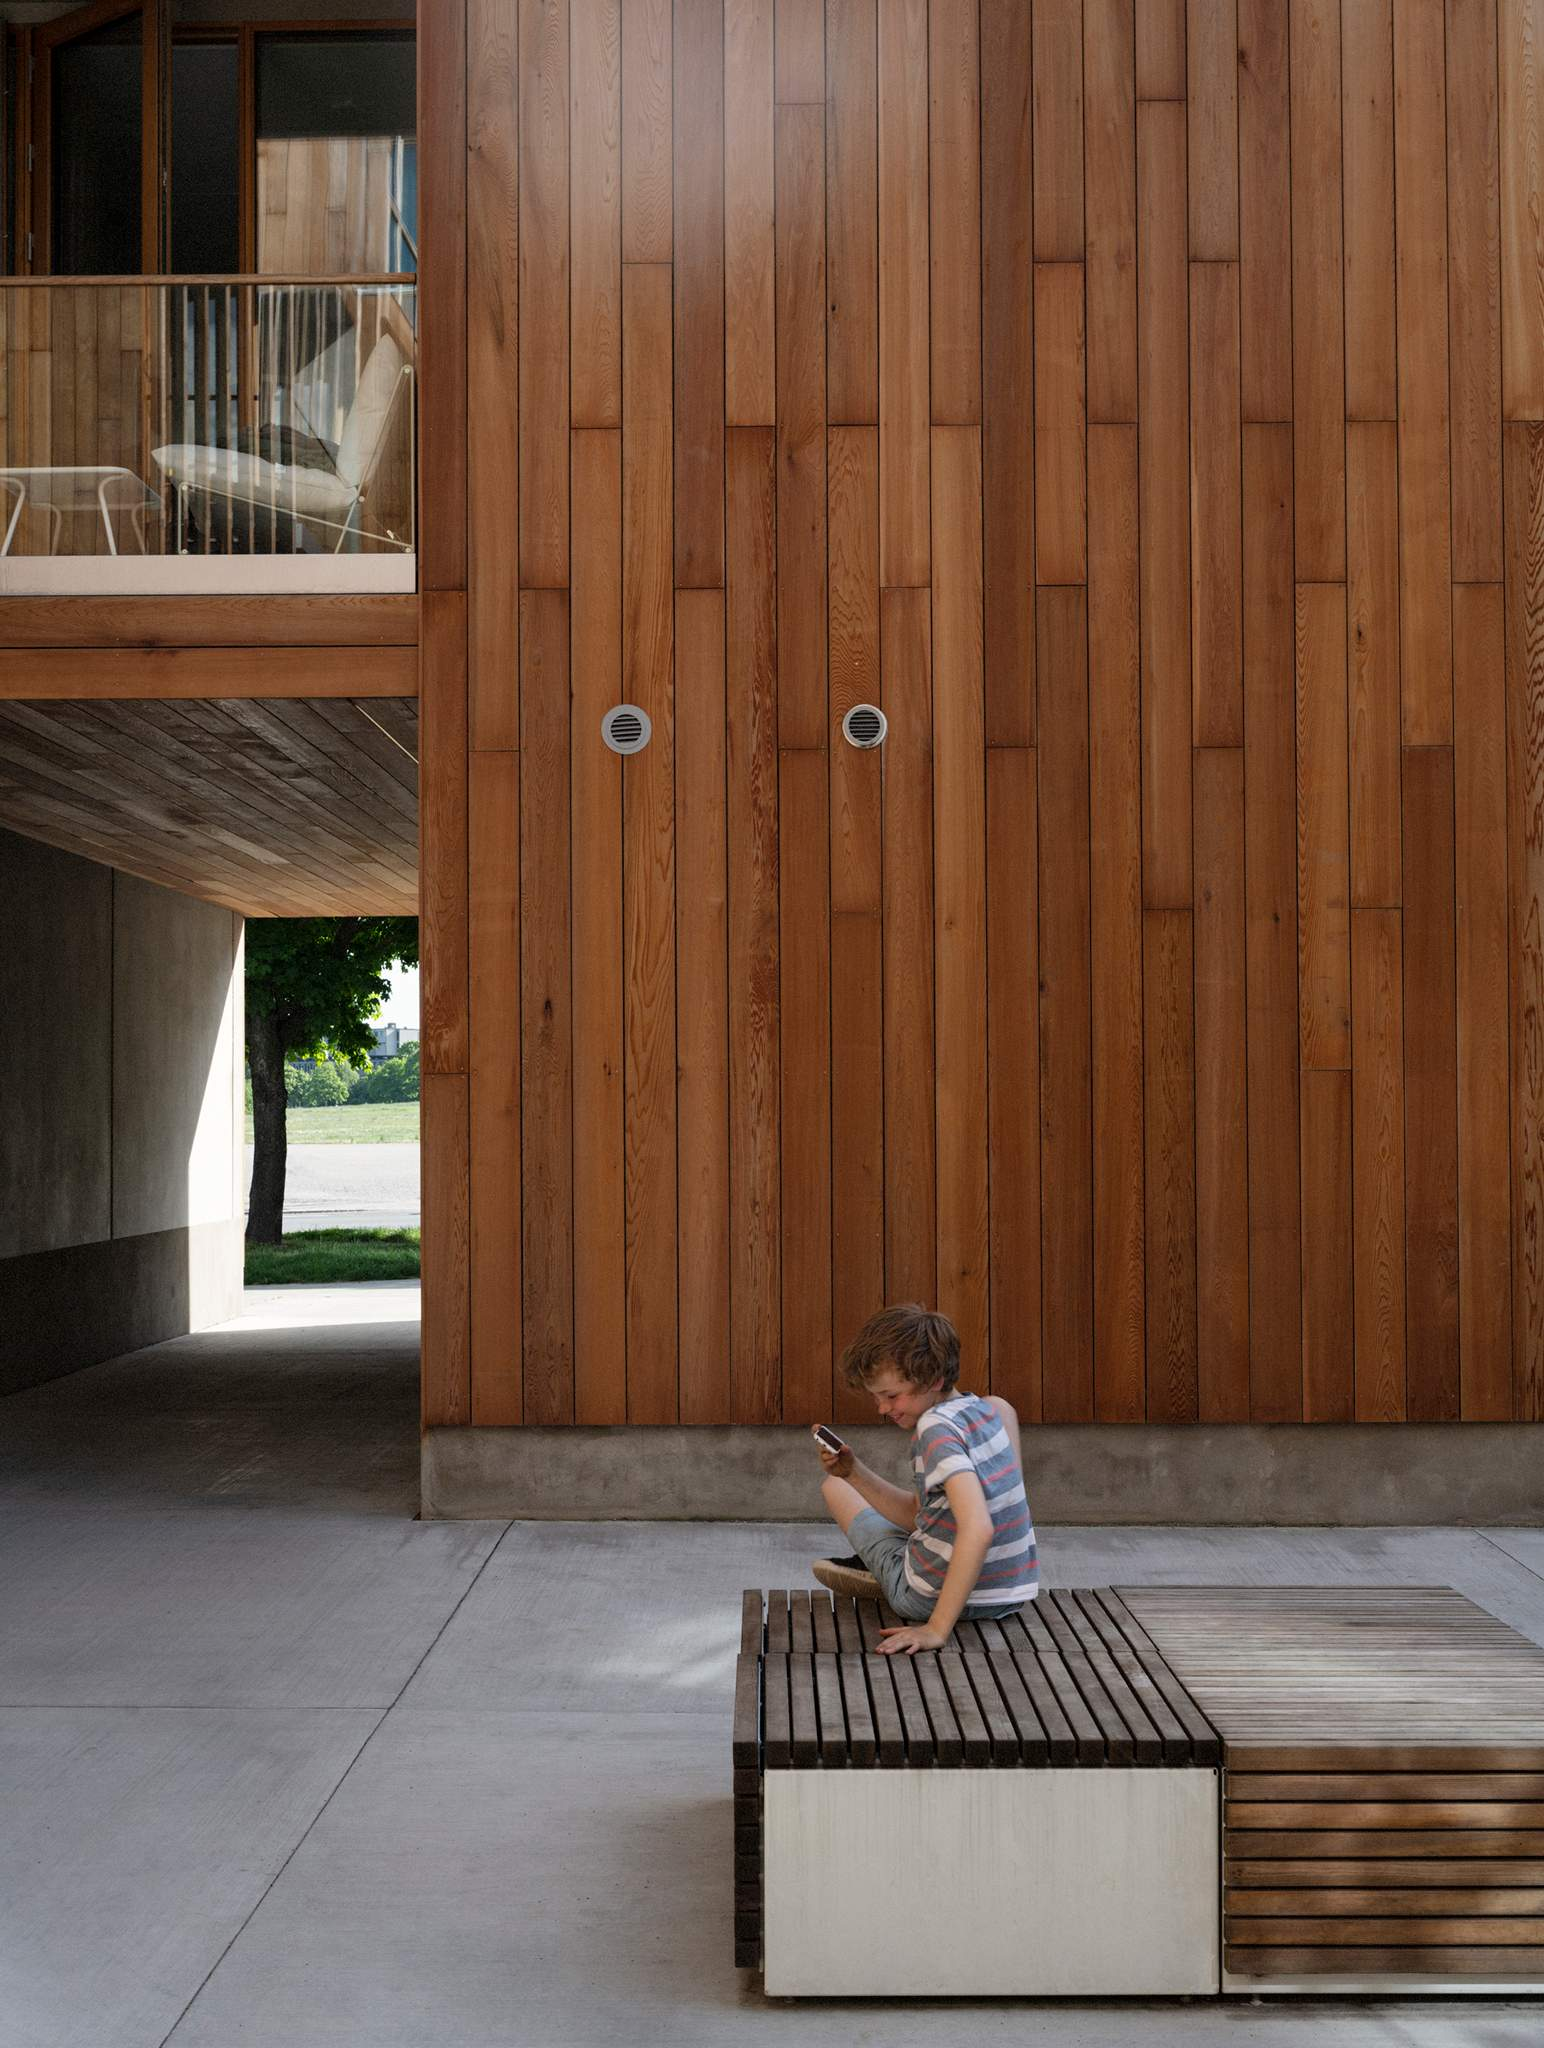 courtyard_unknown-kid_1591.jpg